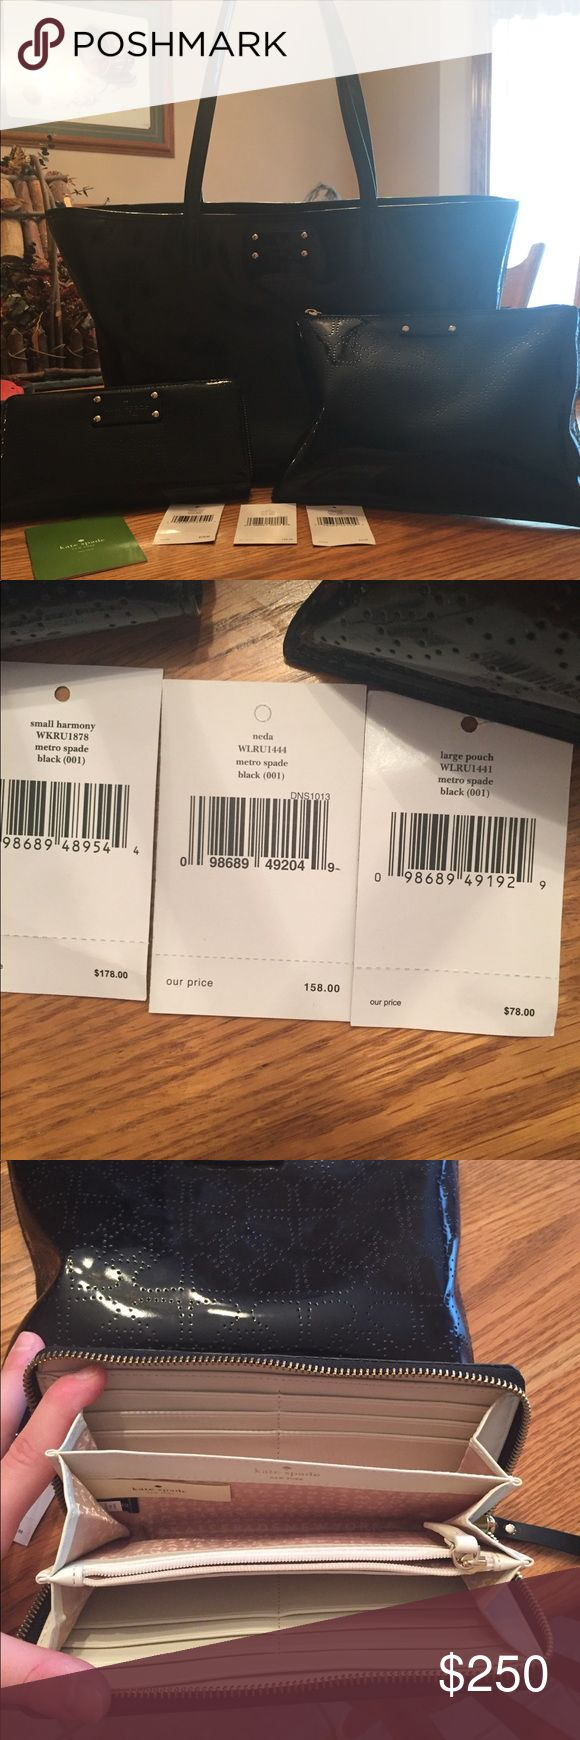 """Kate spade 3 piece set Super cute """"metro spade"""" black patent leather purse, wallet, and large pouch.. the set cost over $415... the wallet and purse have been used but they are in great condition with no rips or stains. The pouch has never been used, just took the tags off it Bags Shoulder Bags"""